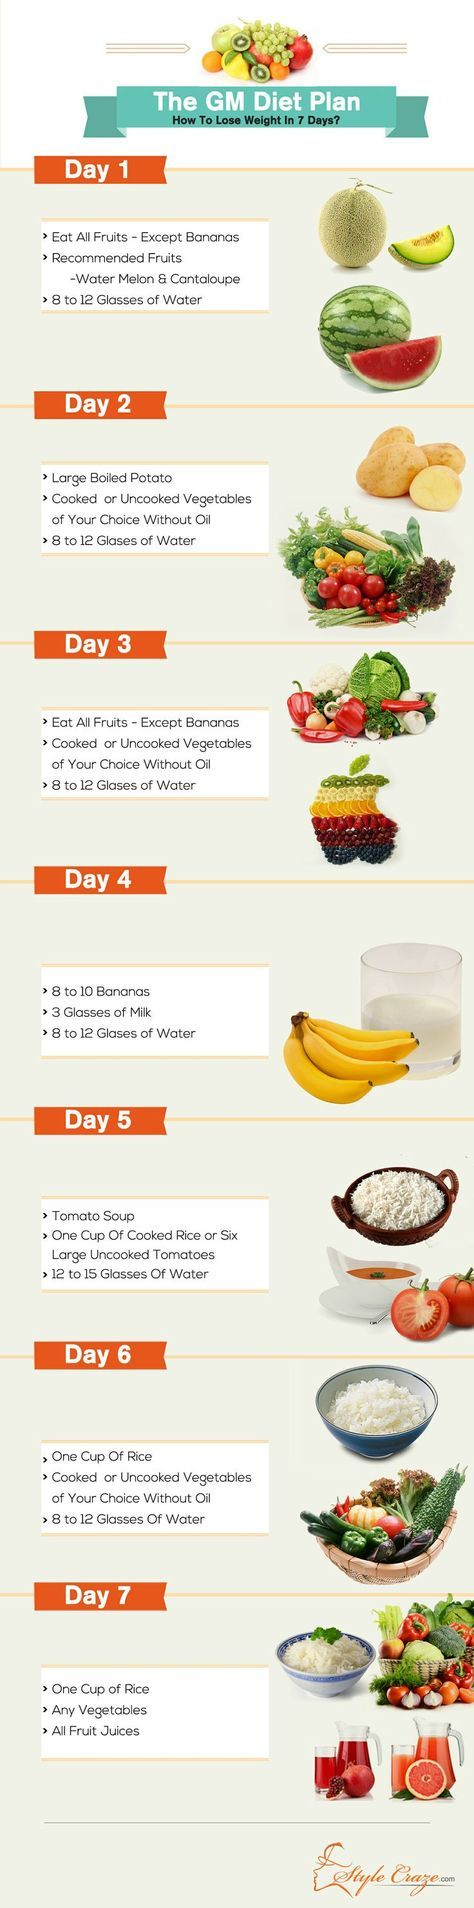 25+ Best Ideas about Gm Diet Plans on Pinterest | Gm diet, 7 day cleanse and 7 day diet